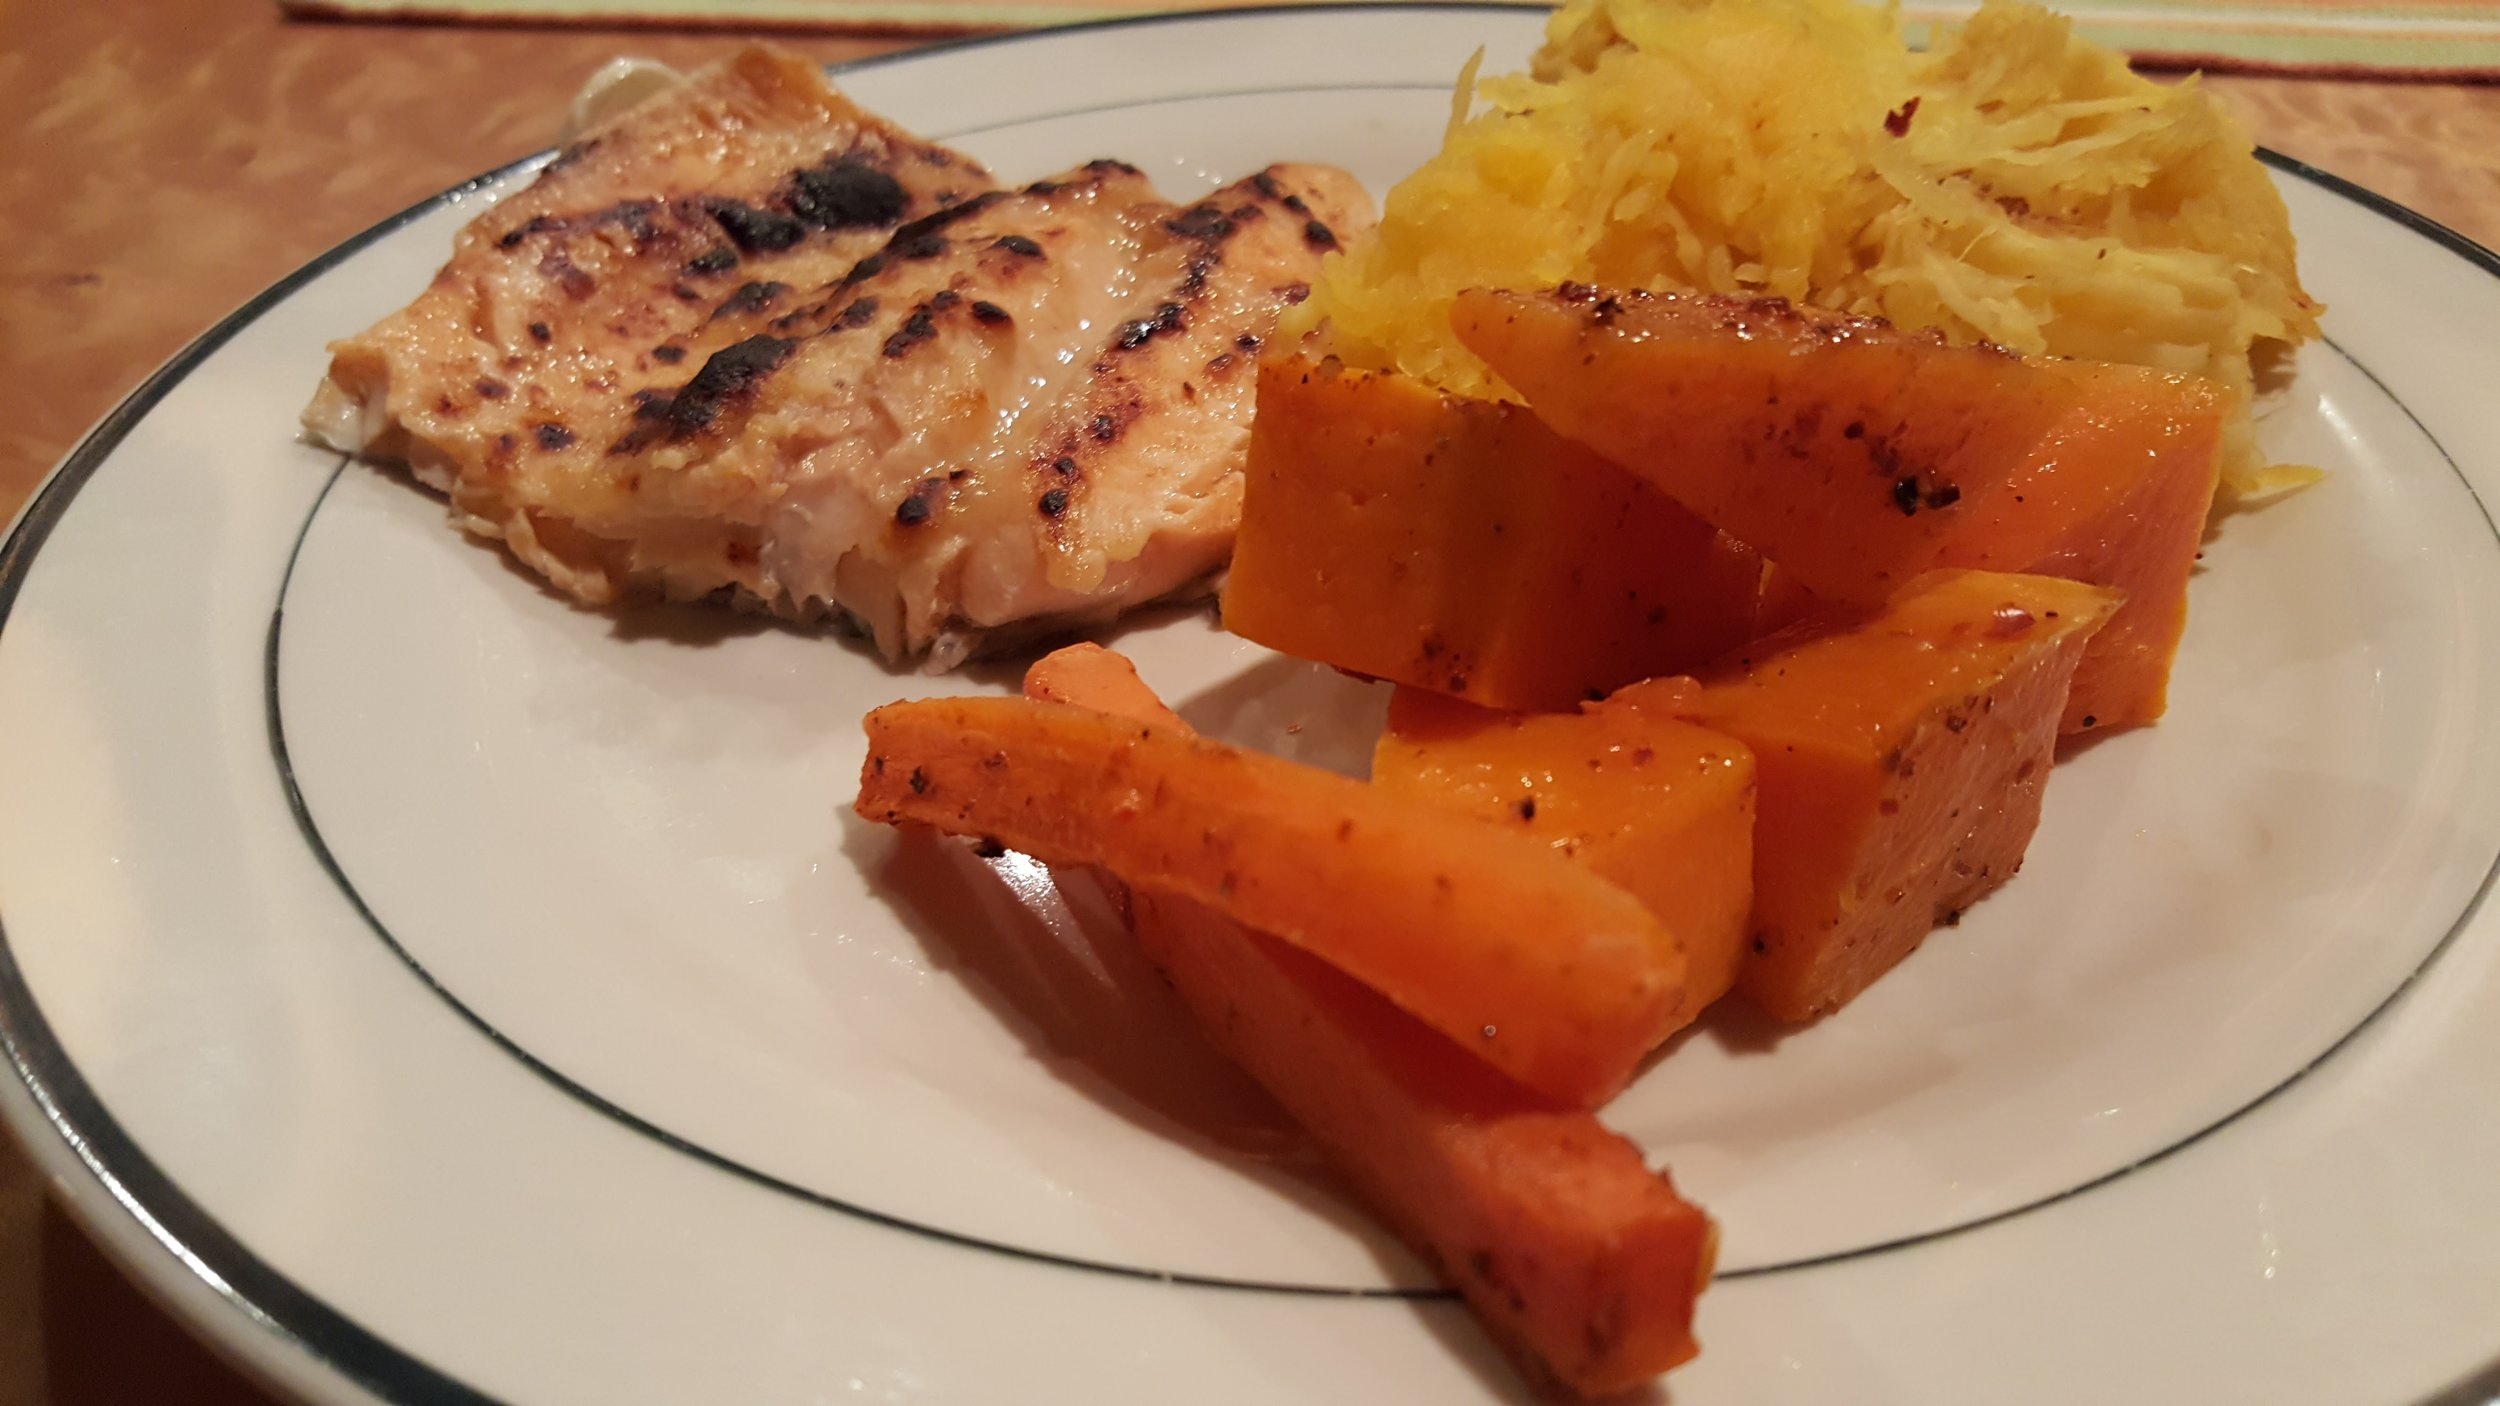 Trout, spaghetti squash and roasted carrots